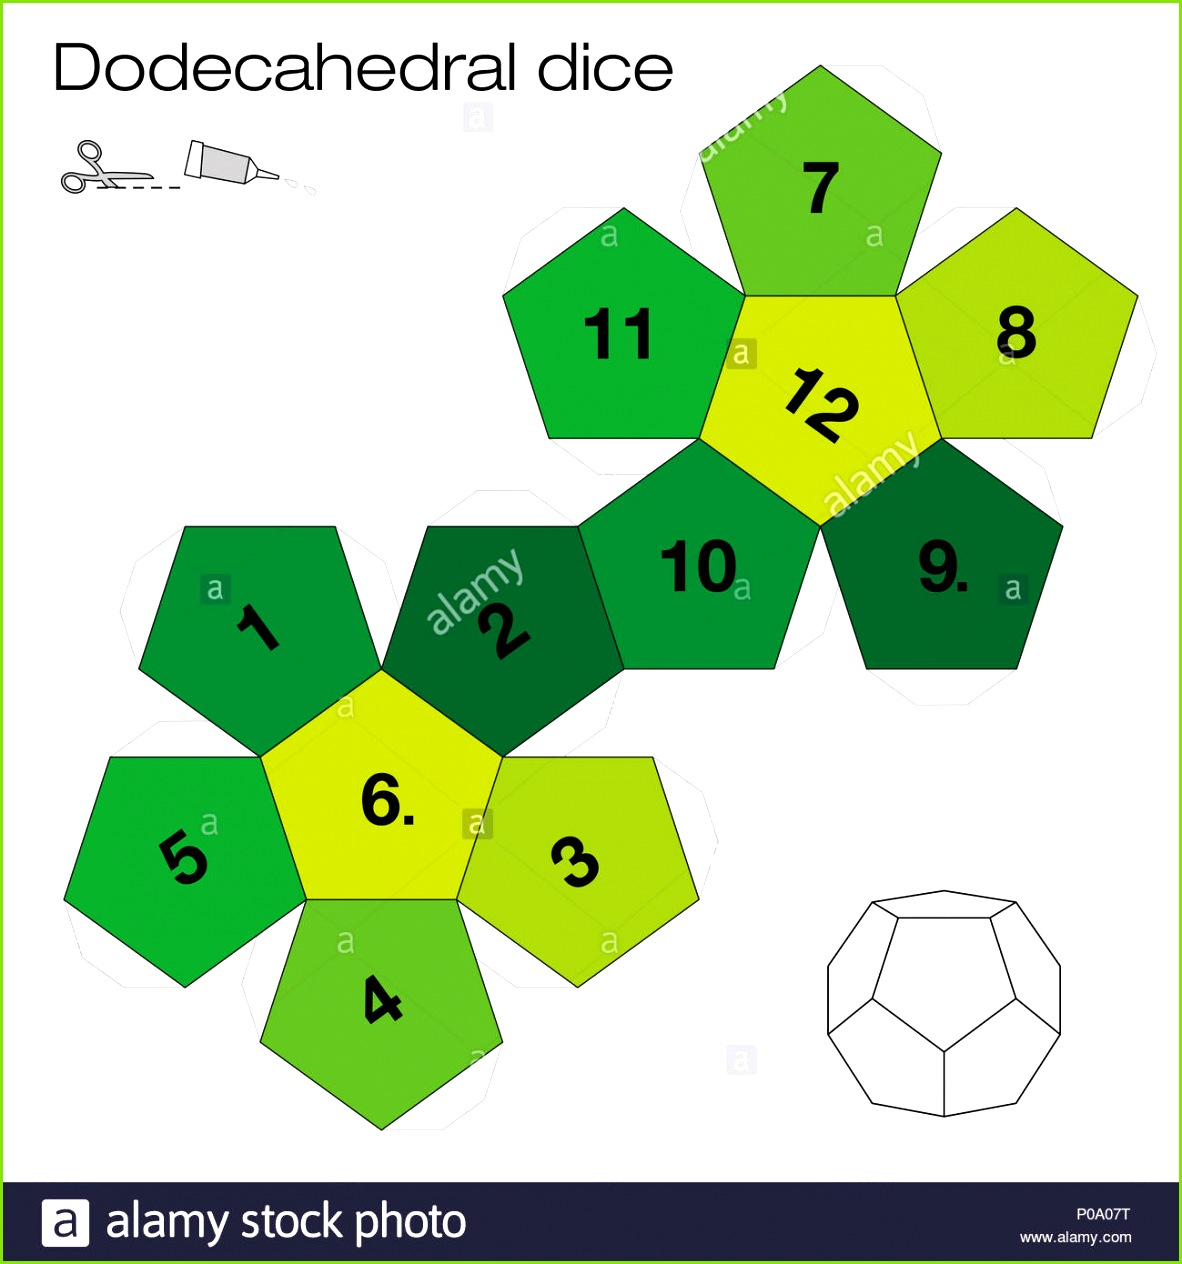 Dodecahedron template dodecahedral dice one of the five platonic solids make a 3d